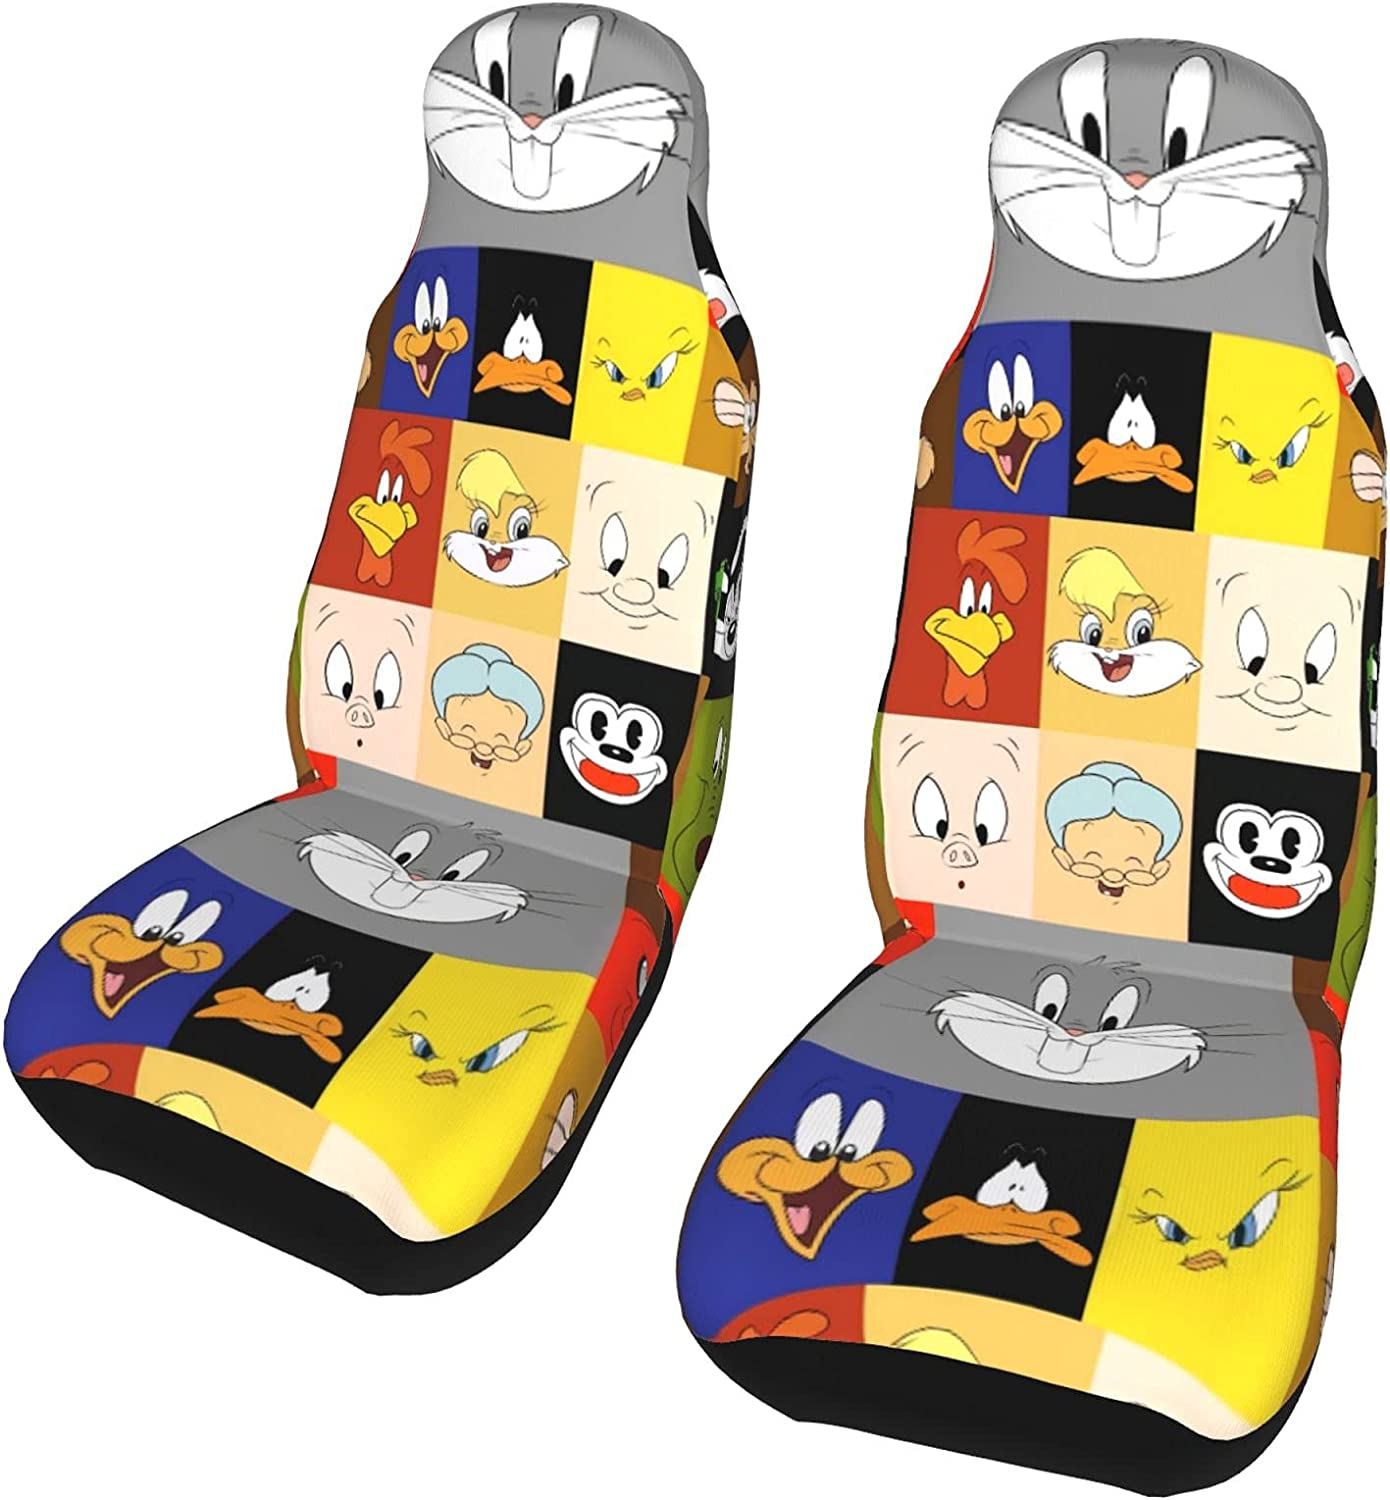 Cash special price Looney Tunes 2 Pcs Car Luxury goods Seat Front Auto Bucket P Seats Covers